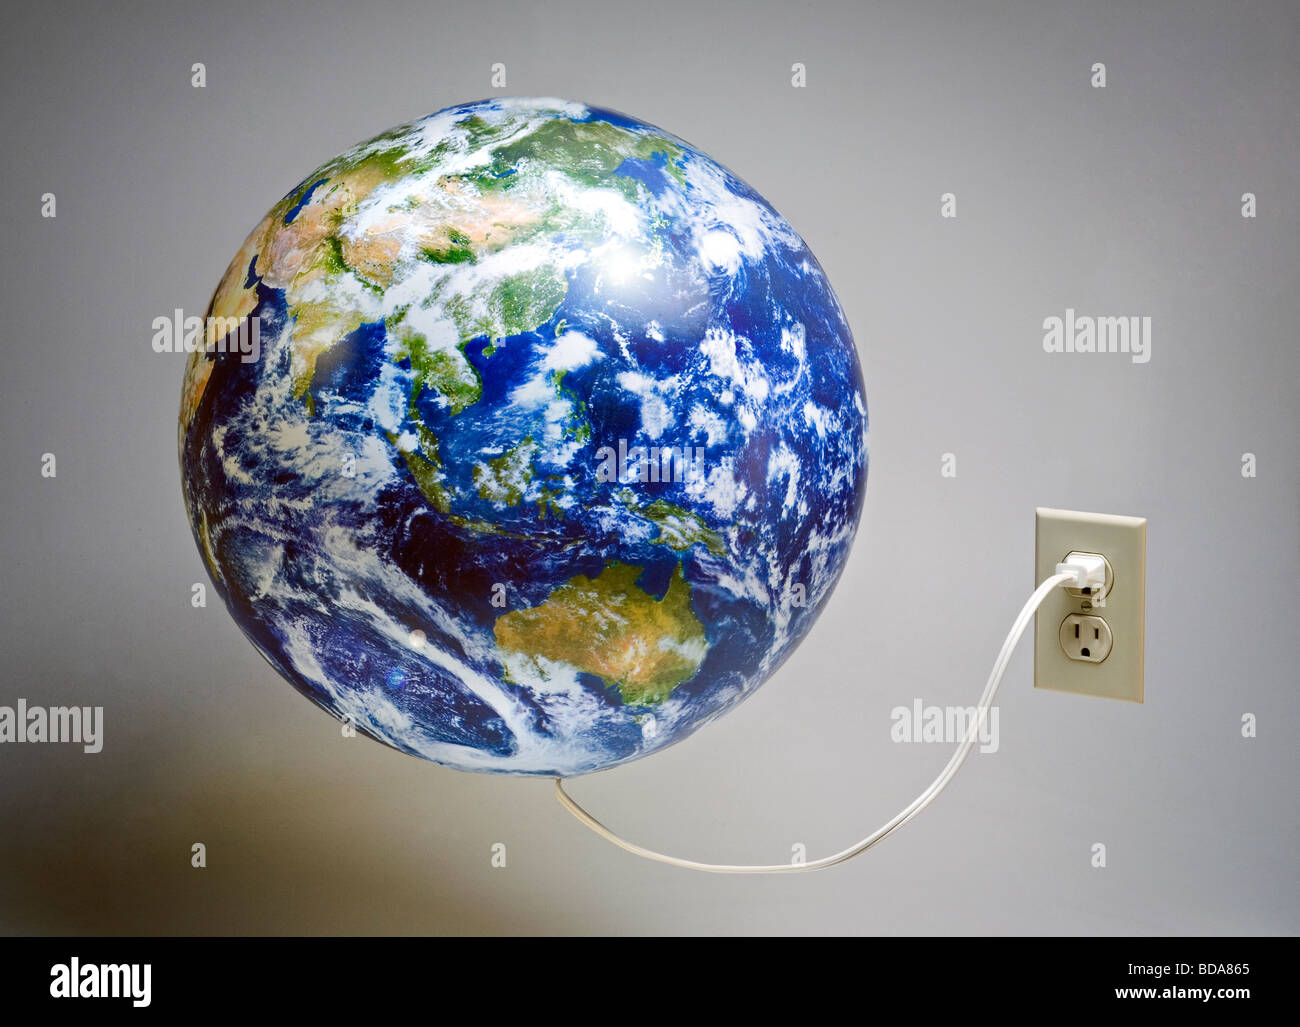 Still shot of a world globe plugged into an electrical outlet - Stock Image